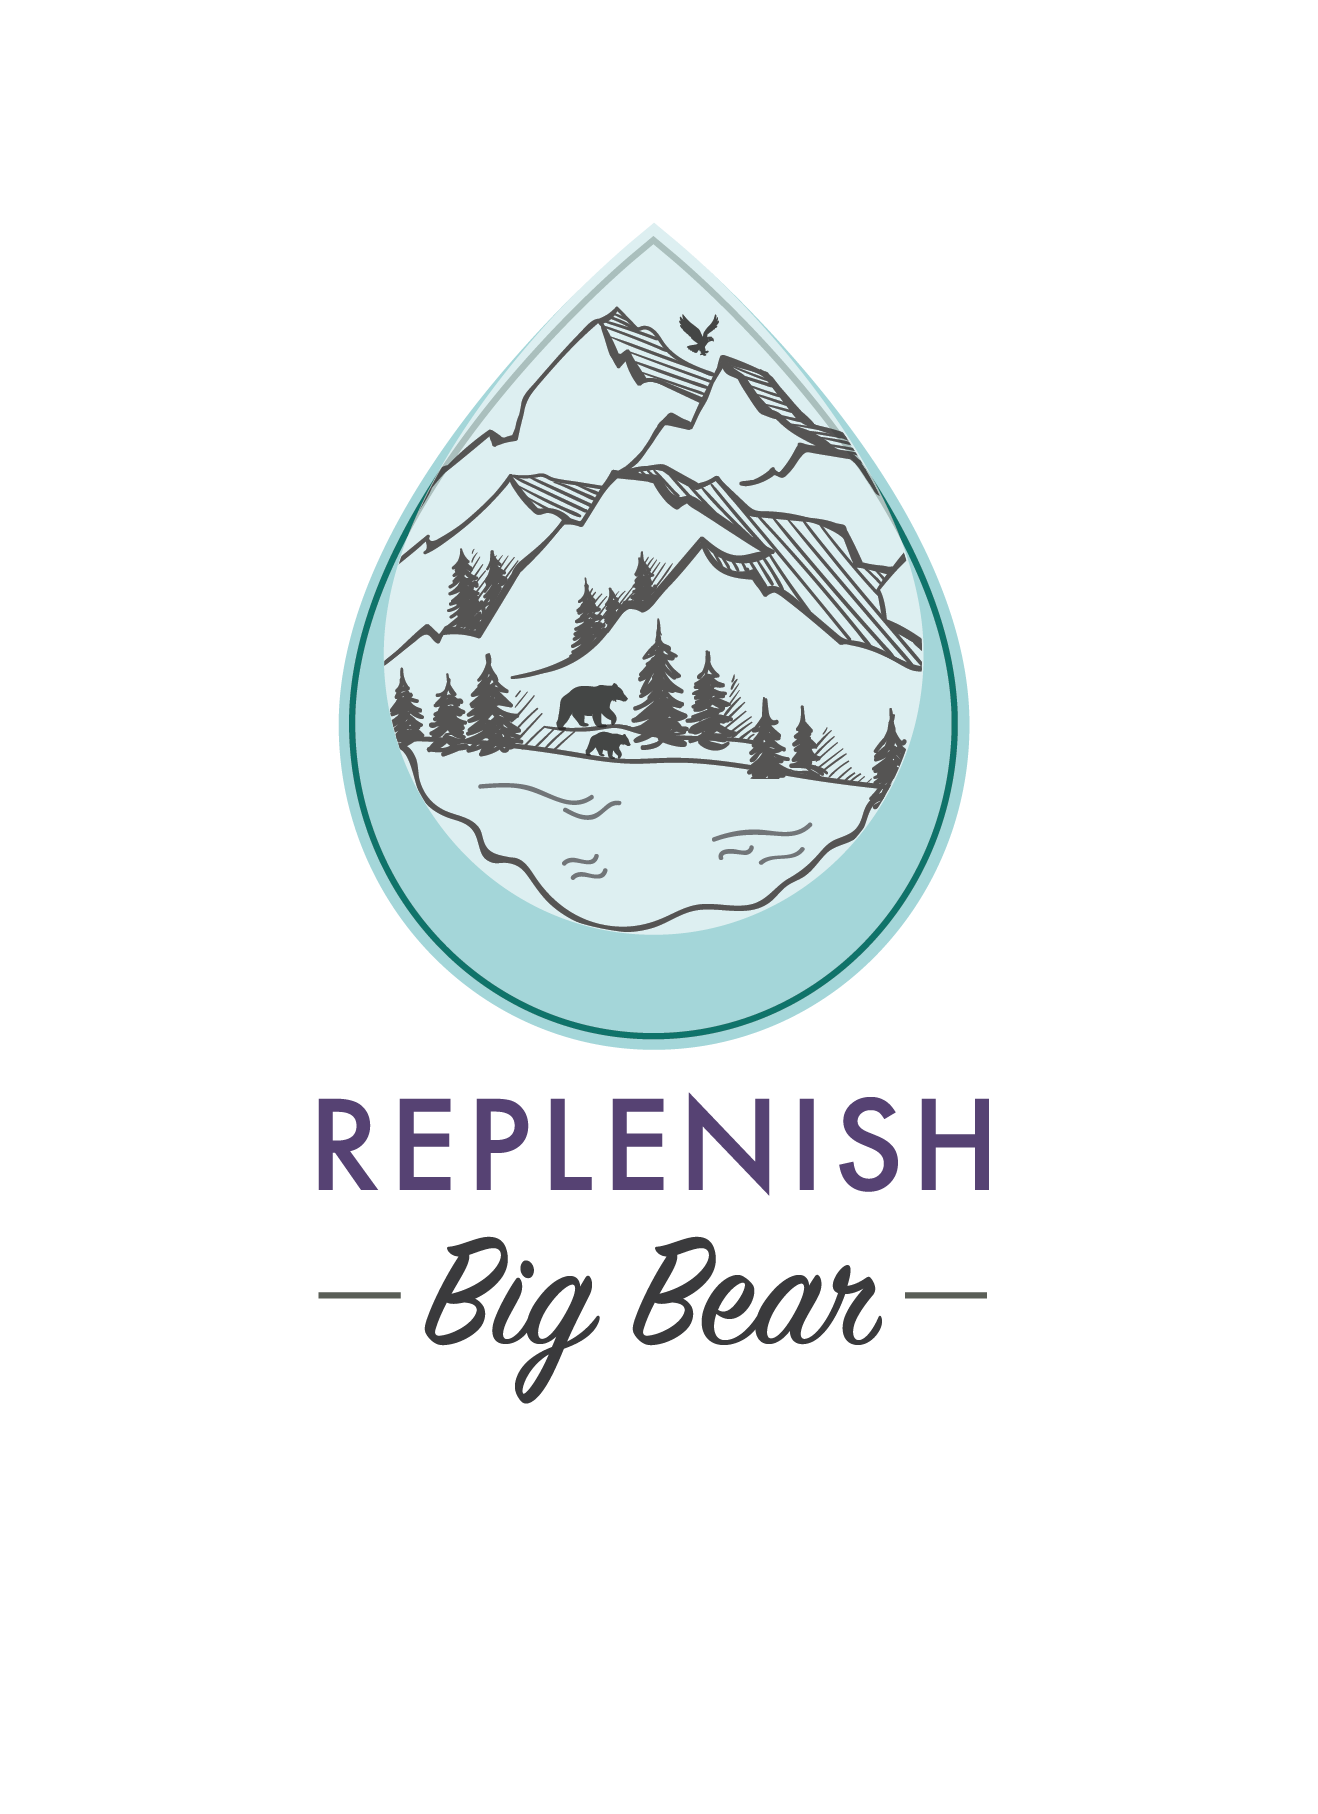 Replenish Big Bear Raindrop with Mountains